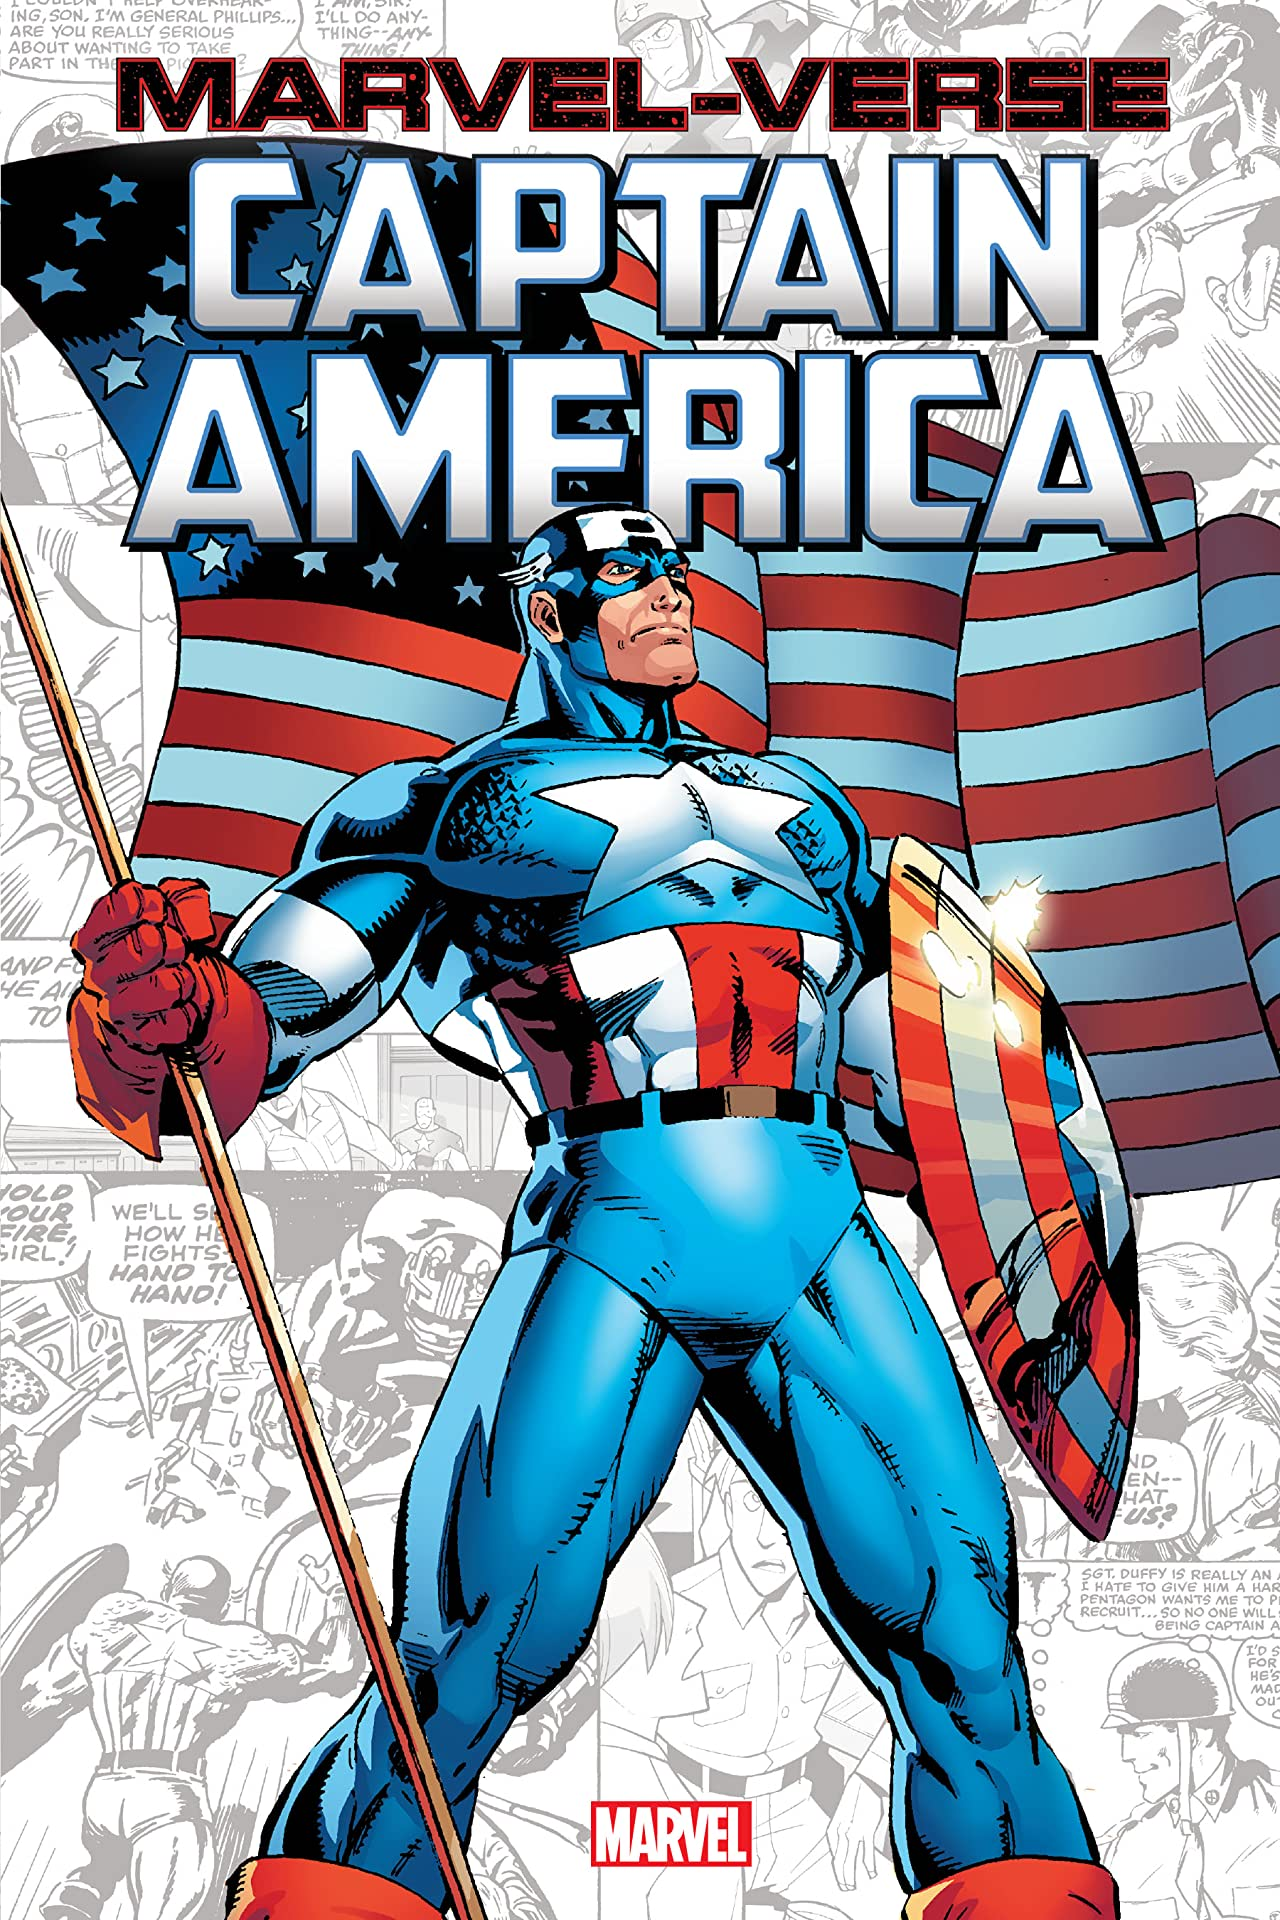 Marvel-Verse: Captain America